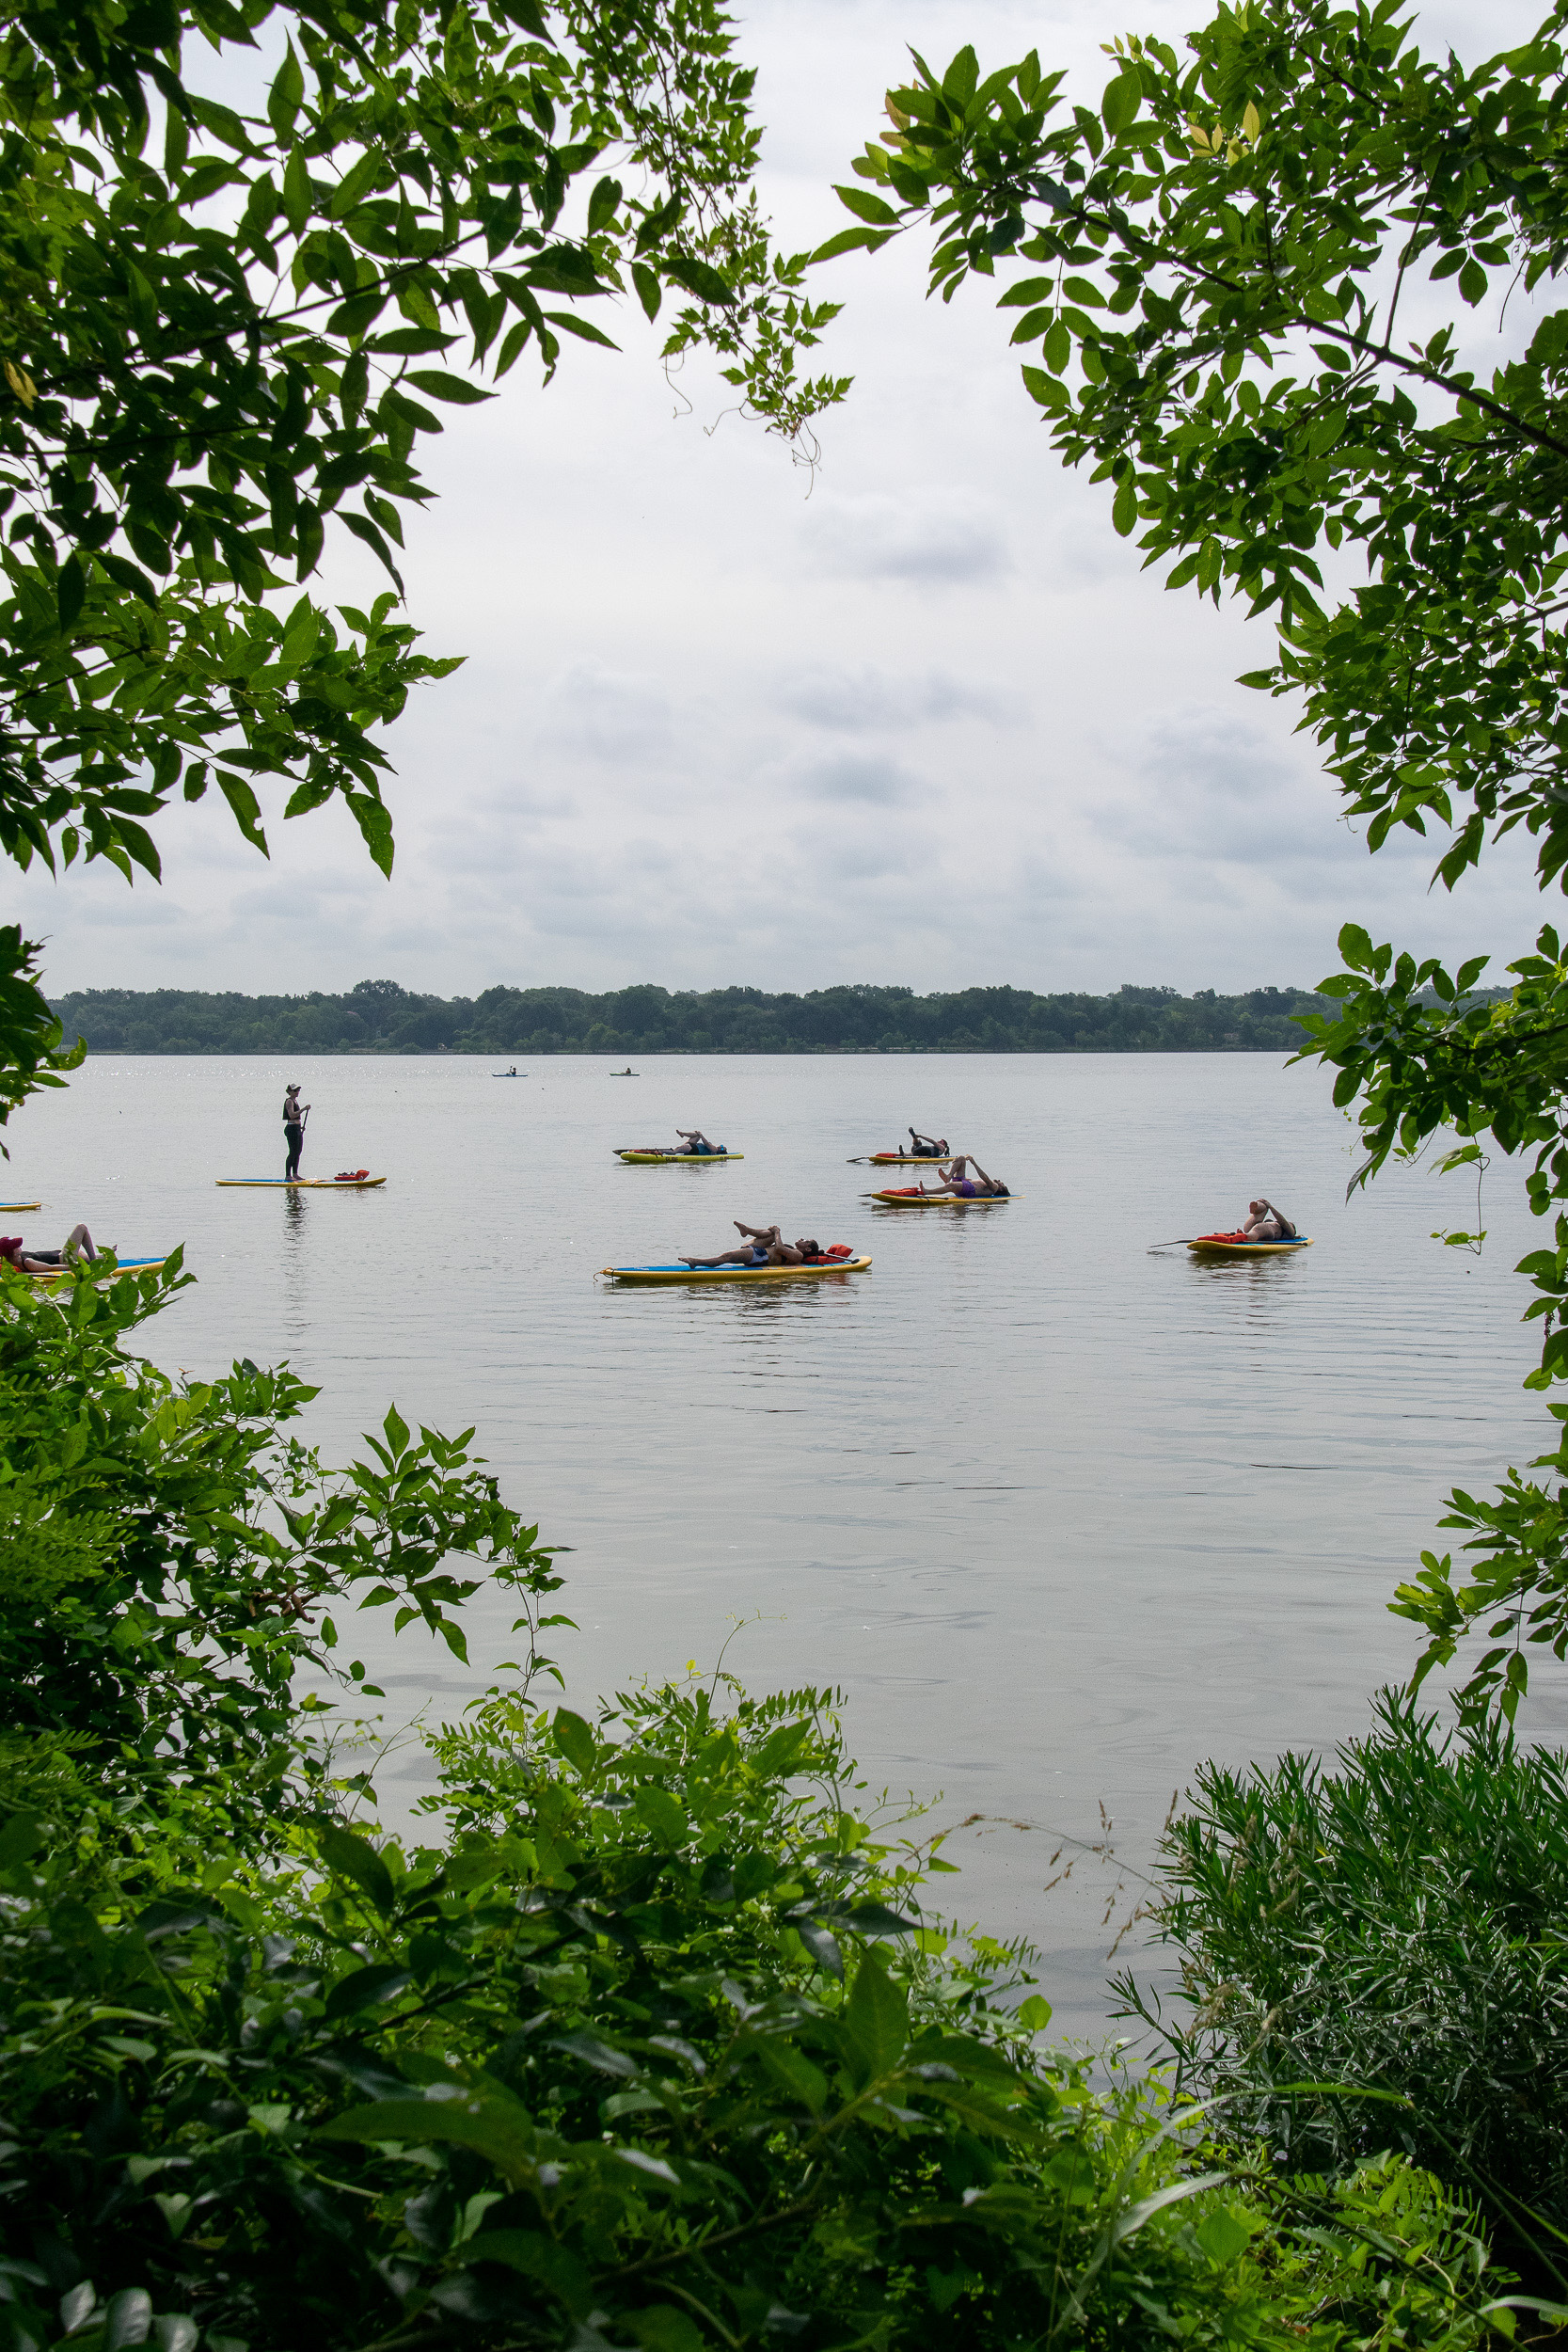 Yogis warming up on their paddle boards, as seen through the trees at White Rock Lake.